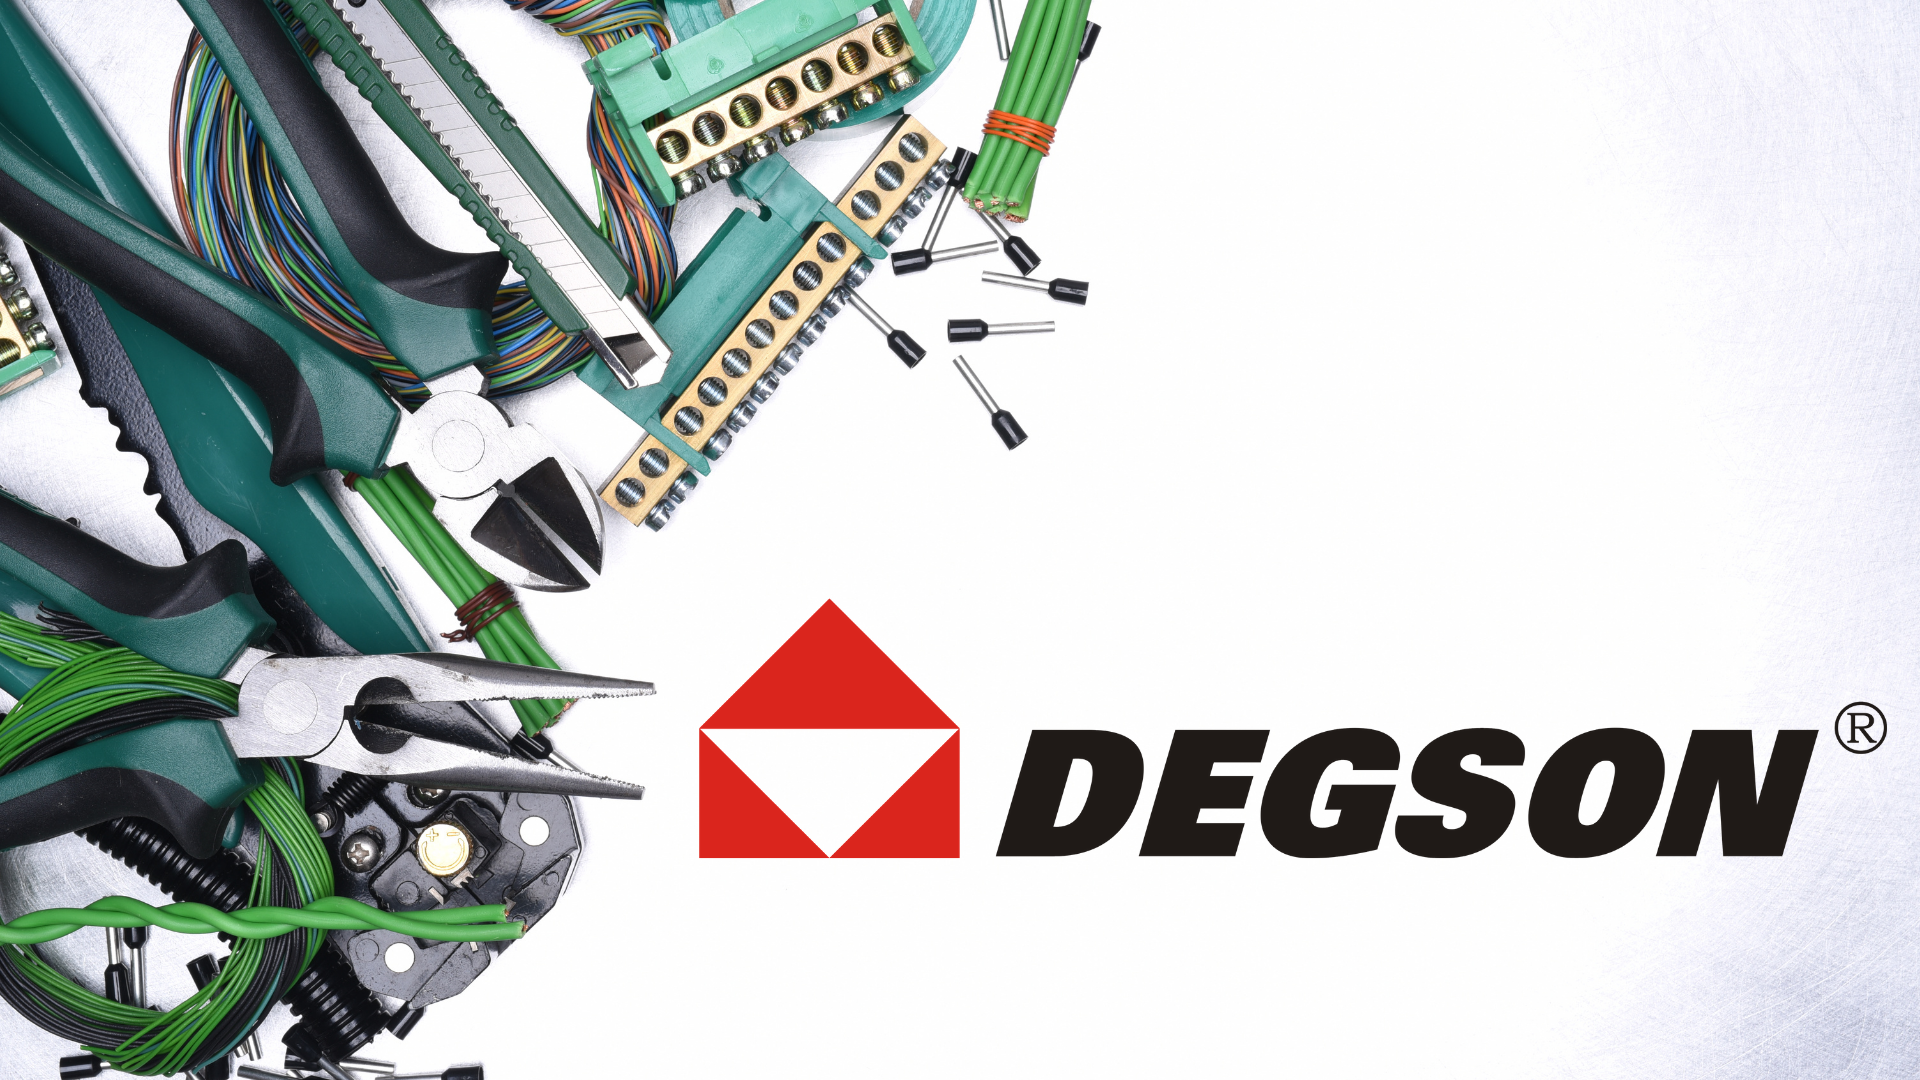 DEGSON Terminal Blocks & Industrial Electrical Connection Products